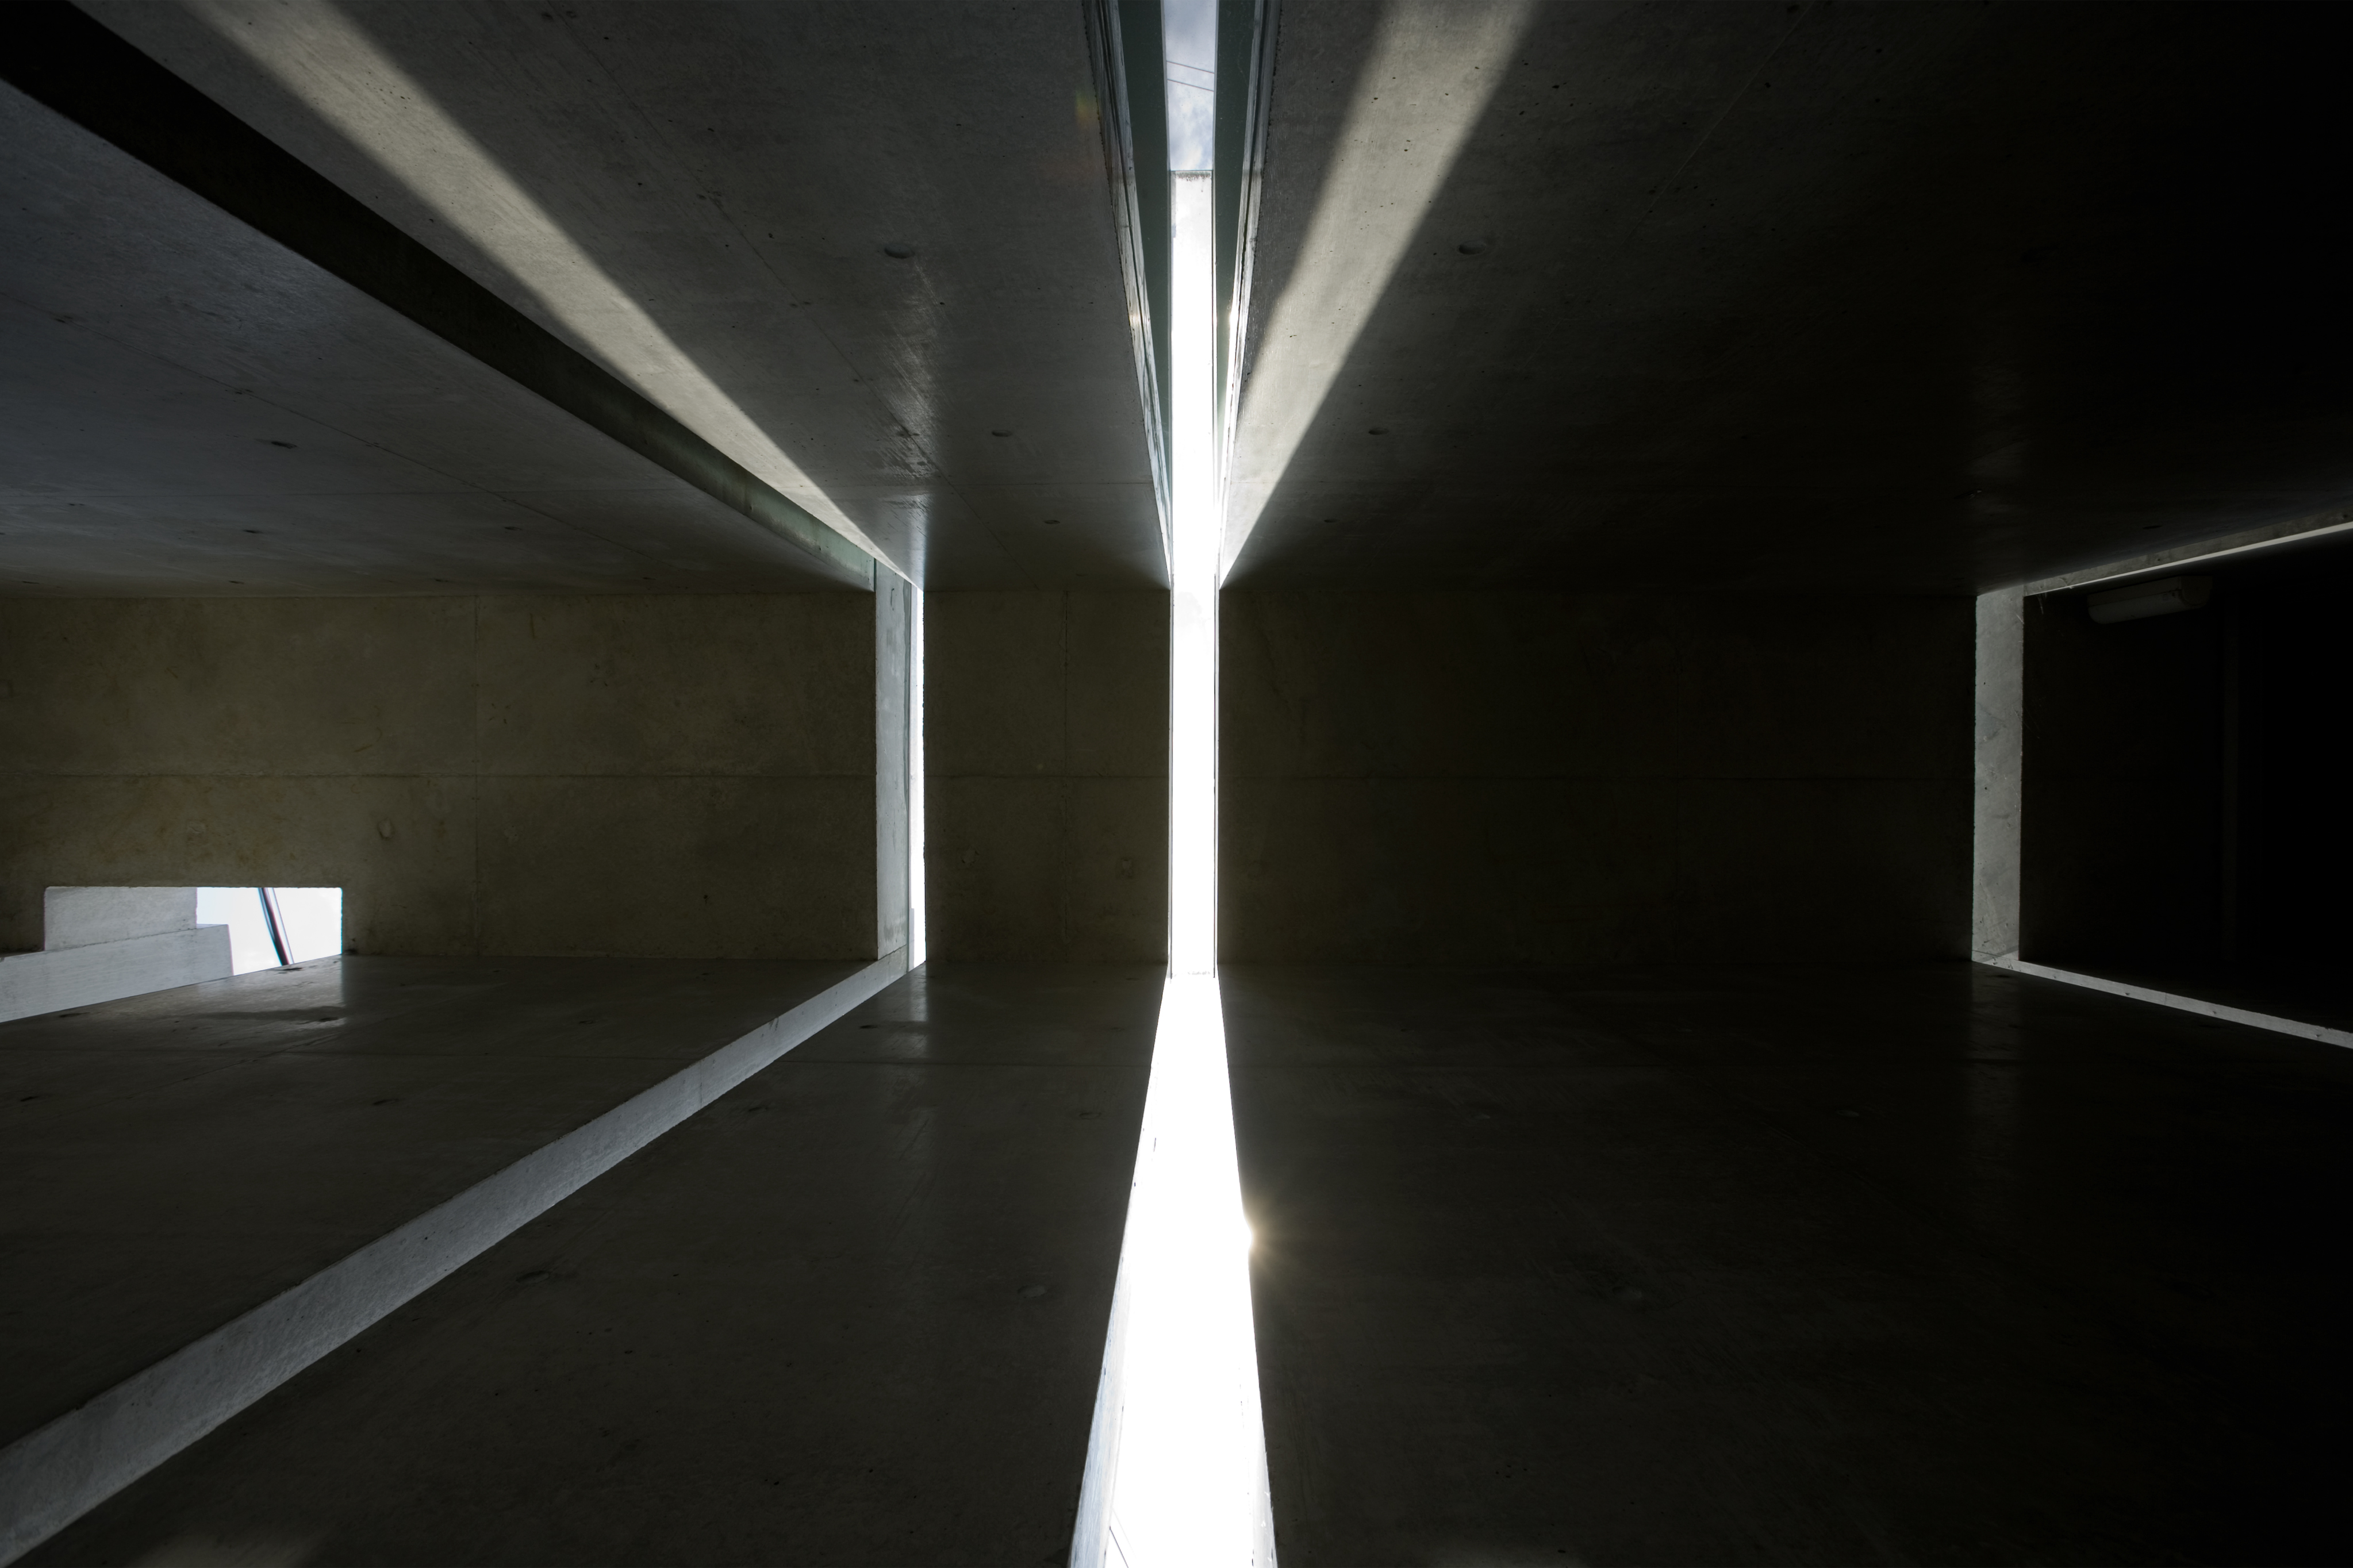 A perfect example of the intention behind the slits: a wide array of light filters in through a small opening, granting ample brightness for a minimal surface area.